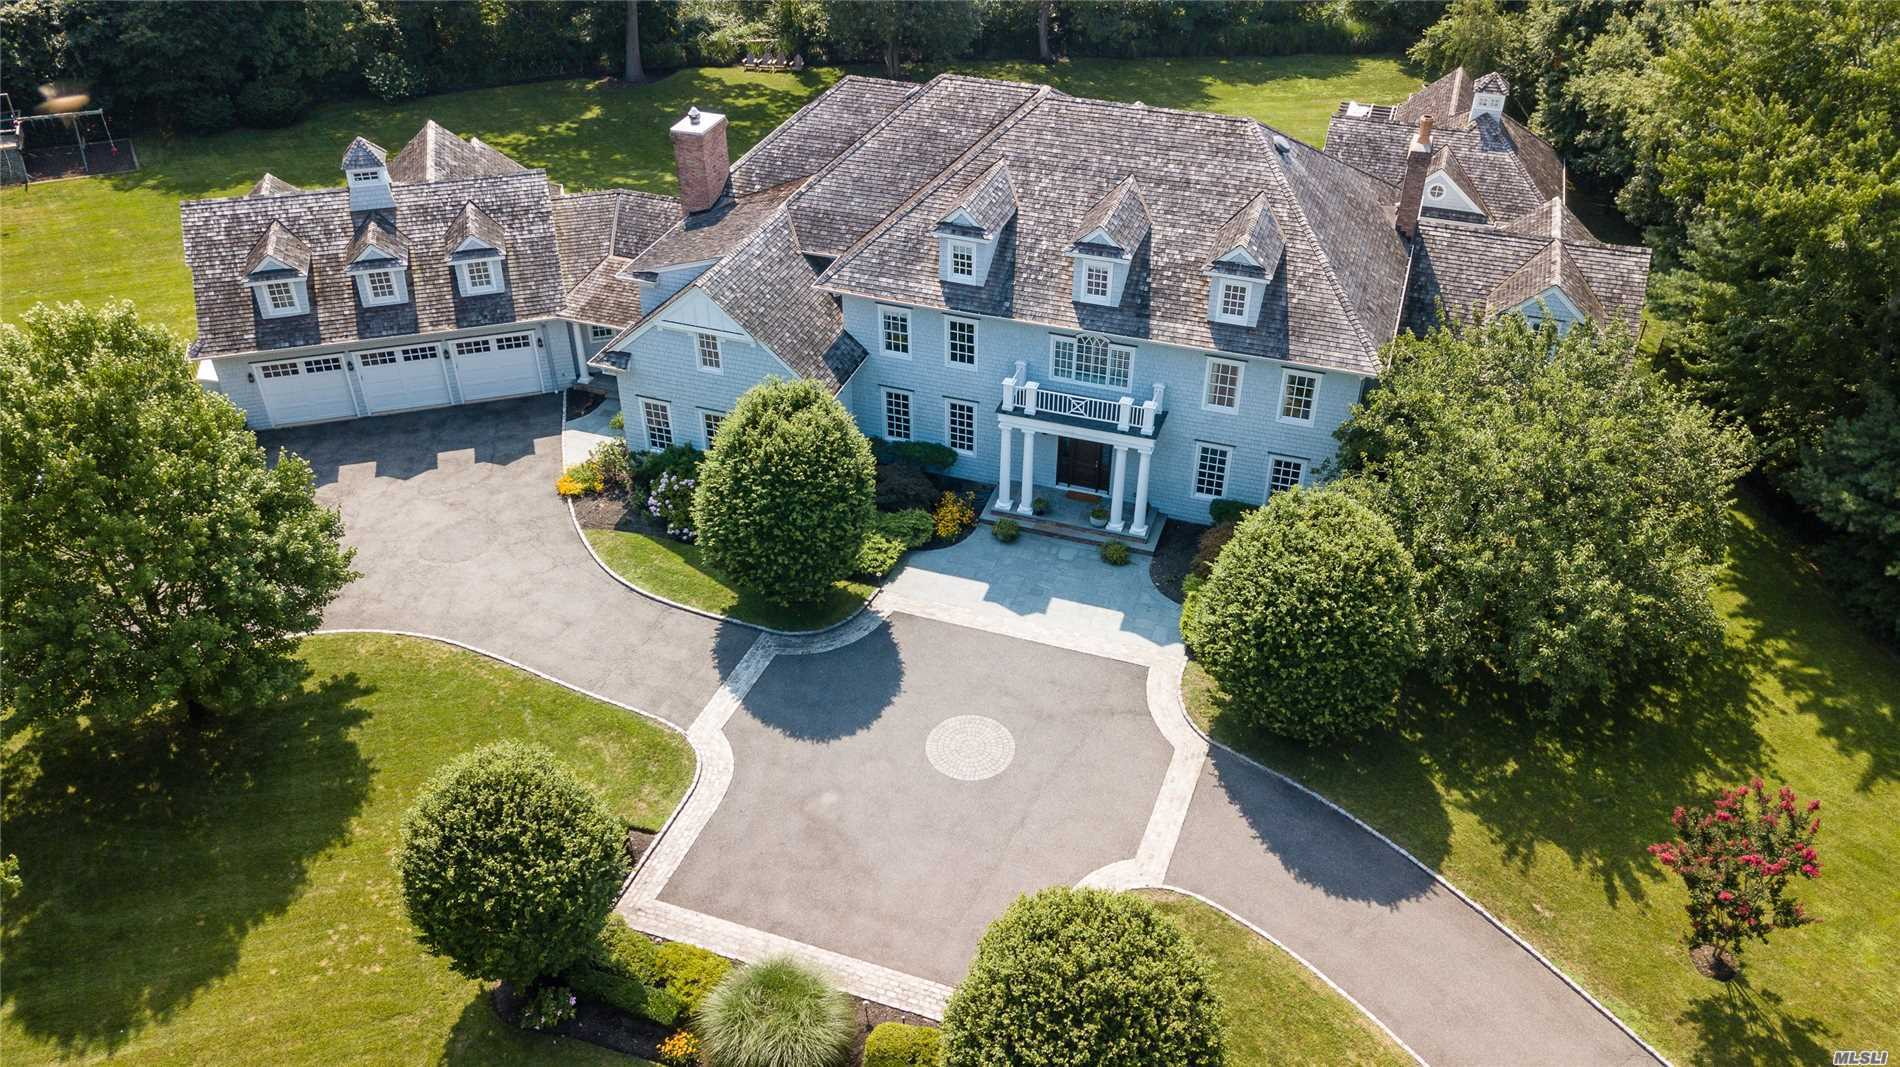 Stunning Shingle Style Residence Evokes Hamptons Beachfront Living. Custom Built To The Highest Standards. Beautifully Scaled Private Quarters & Every Desired Gathering Space. Spectacular Grounds With Pool, Pool House. Located On Cul-De-Sac In Prestigious Harriman Estates And Short Distance To Beach.